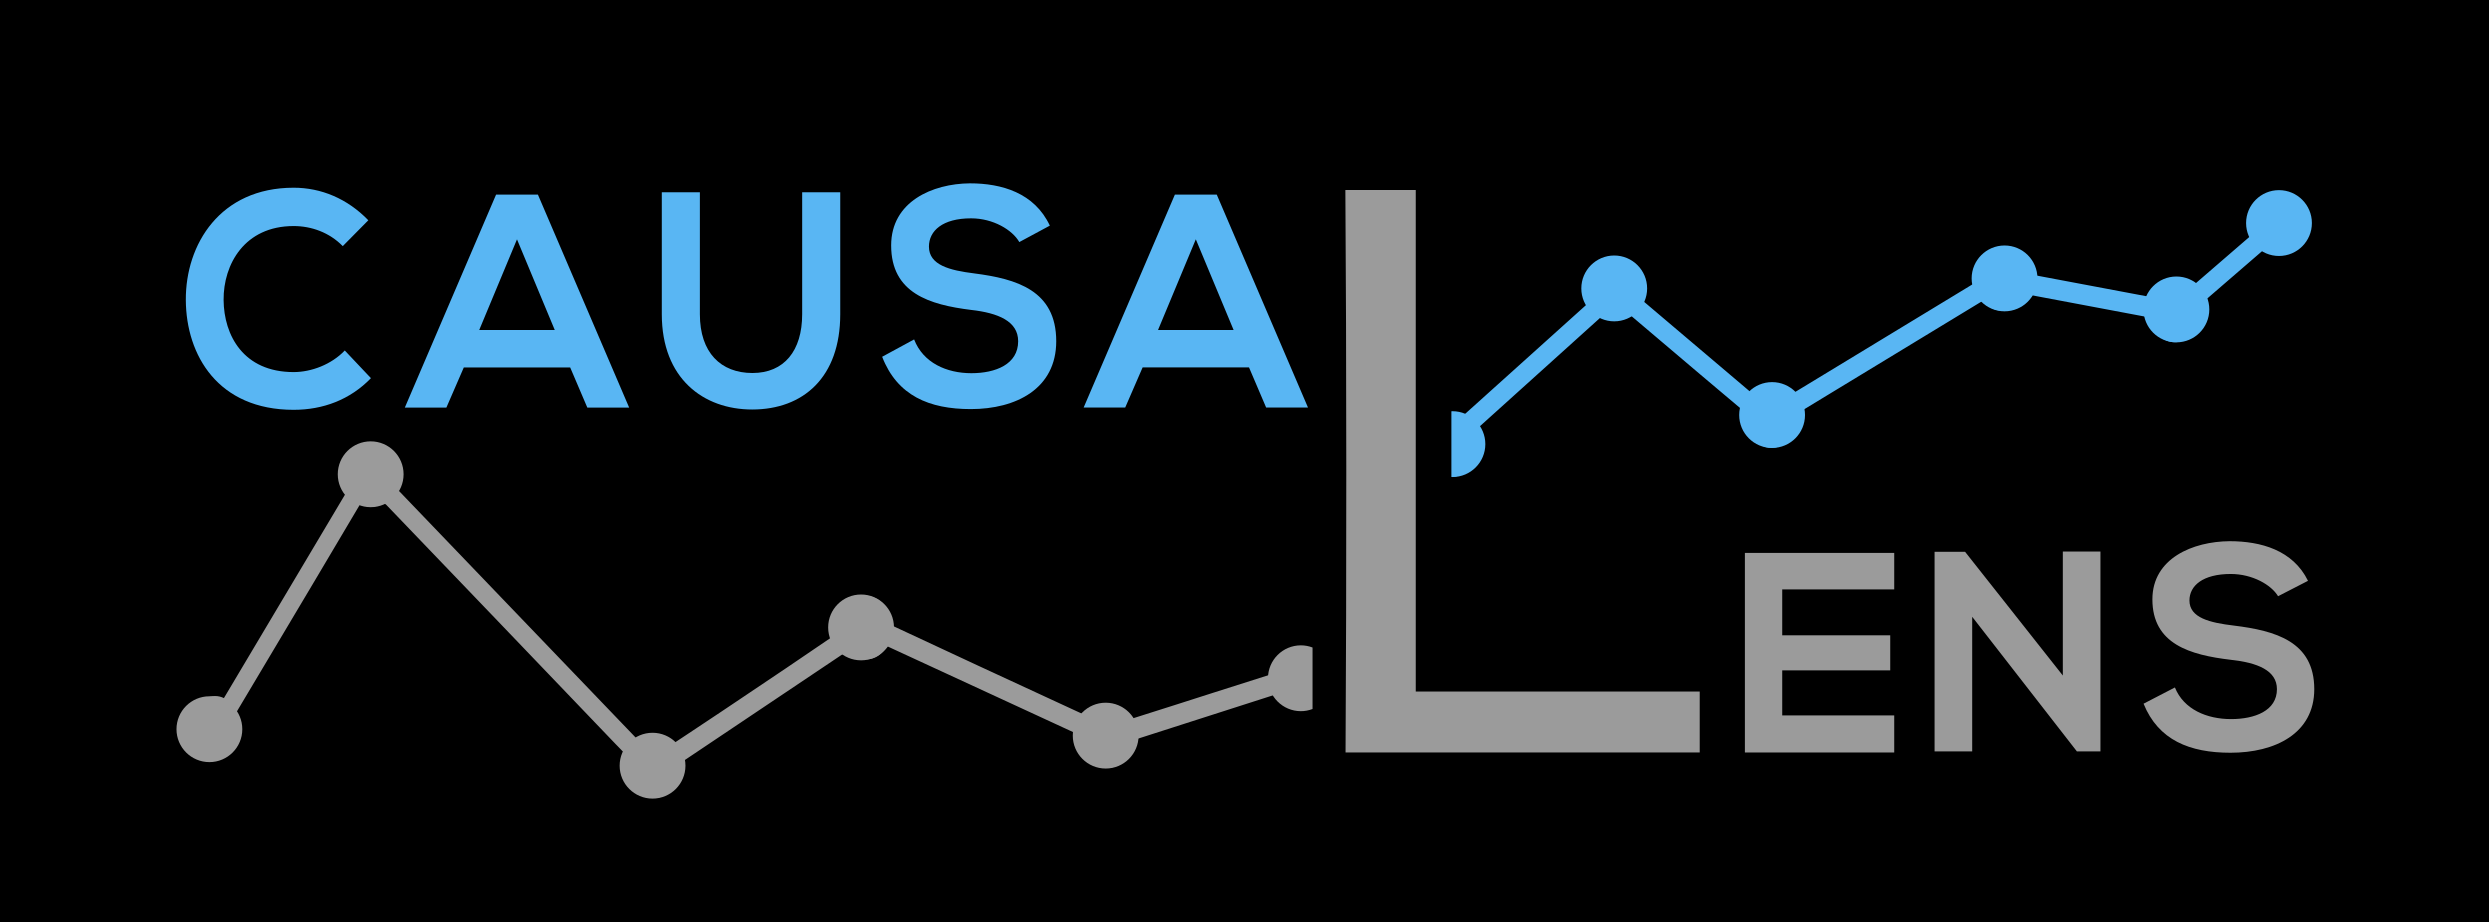 causaLens Appoints Hedge Fund Veteran and Data Leaders to